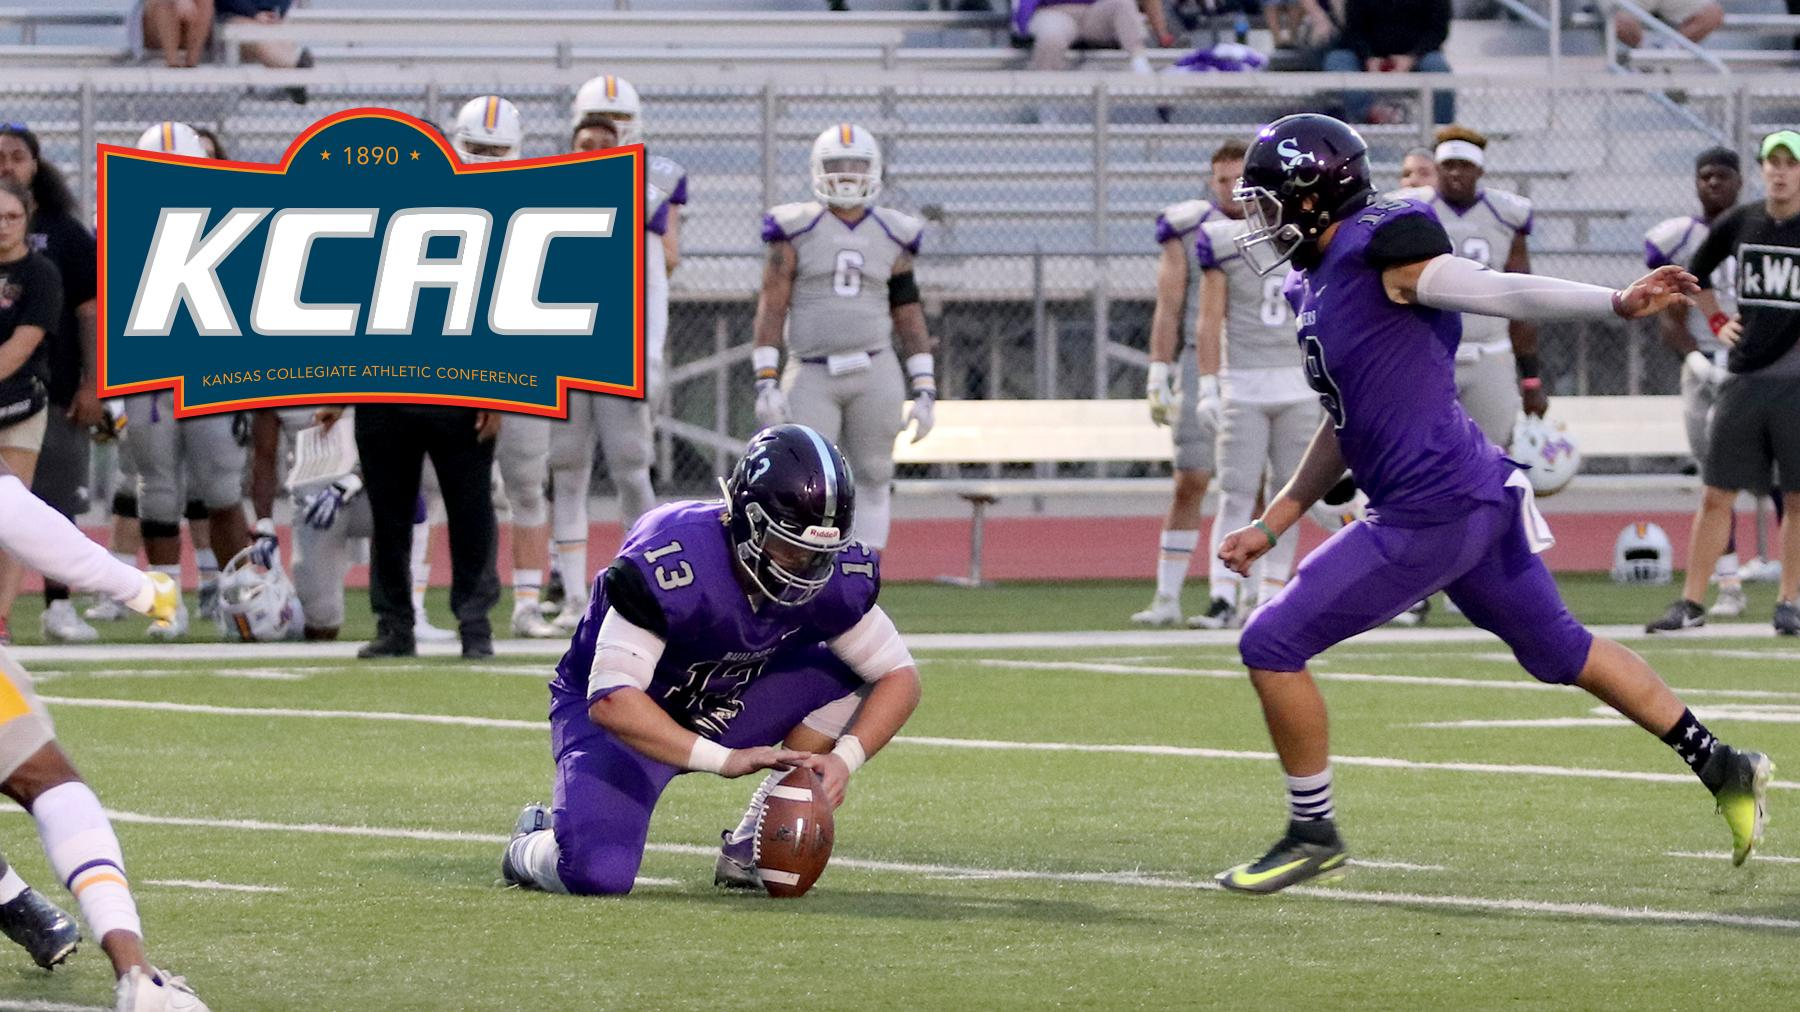 Mario Esparza Claims Second KCAC Special Teams Player of the Week Honor